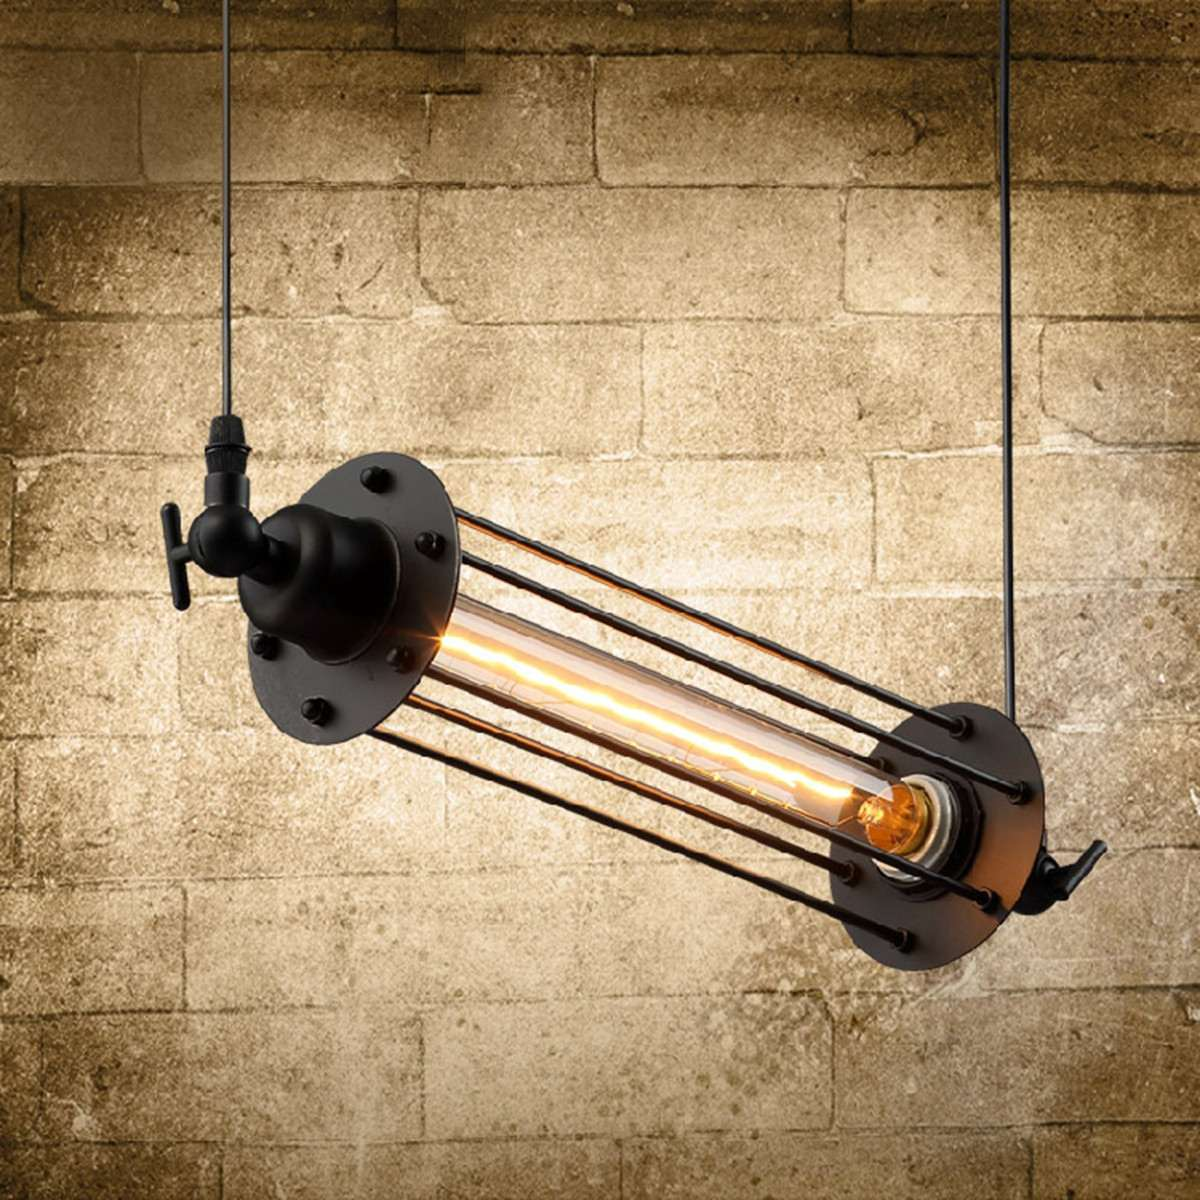 Industrial Retro Vintage Flute Ceiling Lamp E27 Hanging Pendant Light Cafe Bar Restaurant Indoor Lighting Decor AC 110-240V zg9048 pendant light ac 110 240v